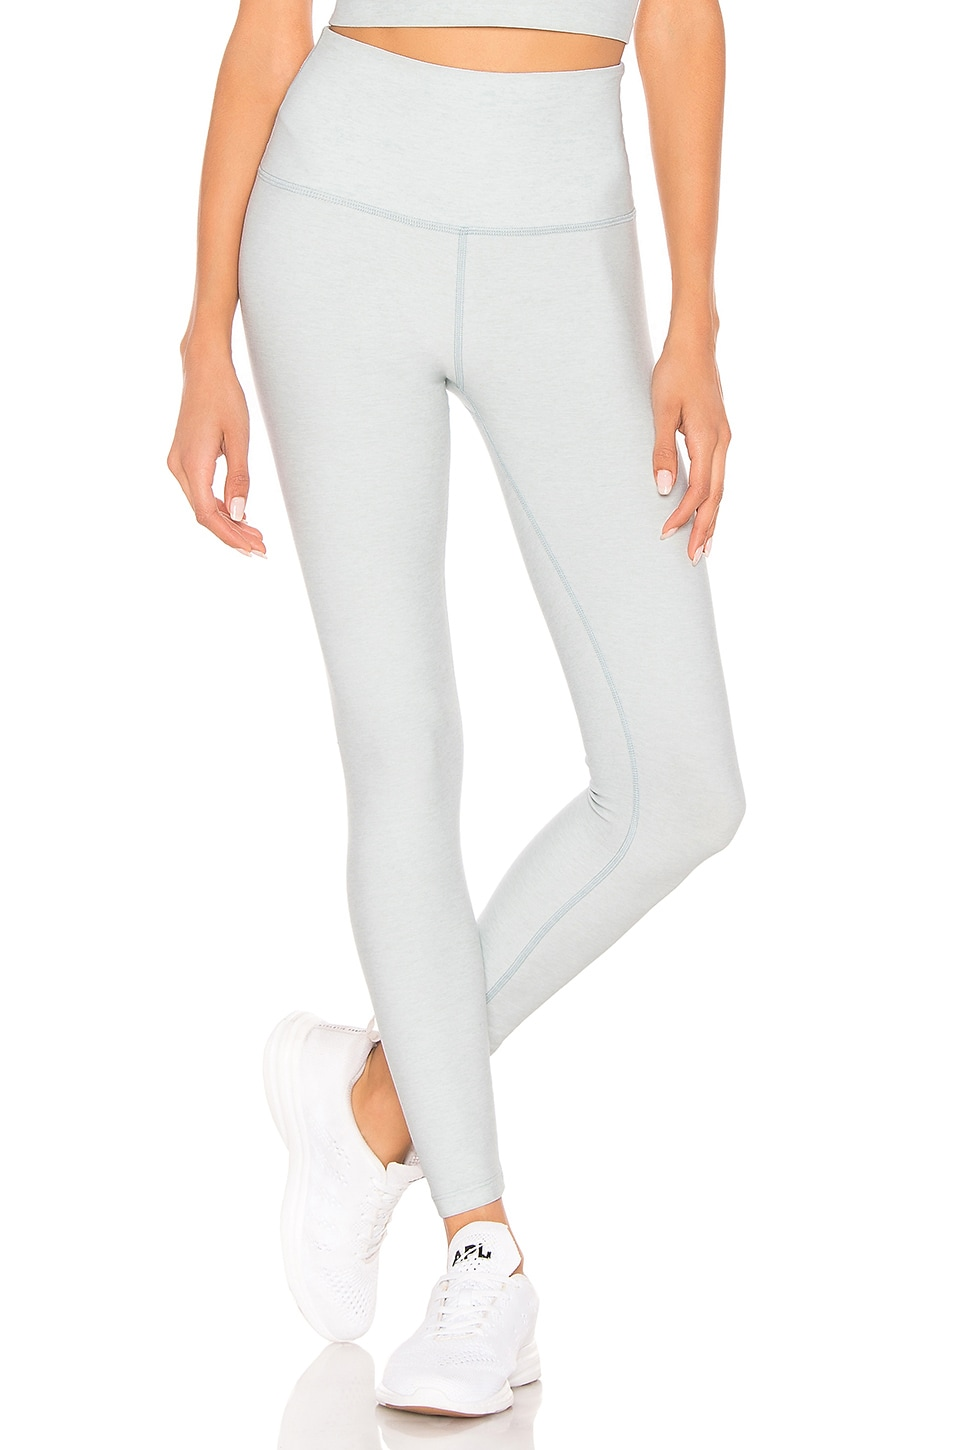 Beyond Yoga Spacedye Caught In The Midi High Waisted Legging in Glacier White